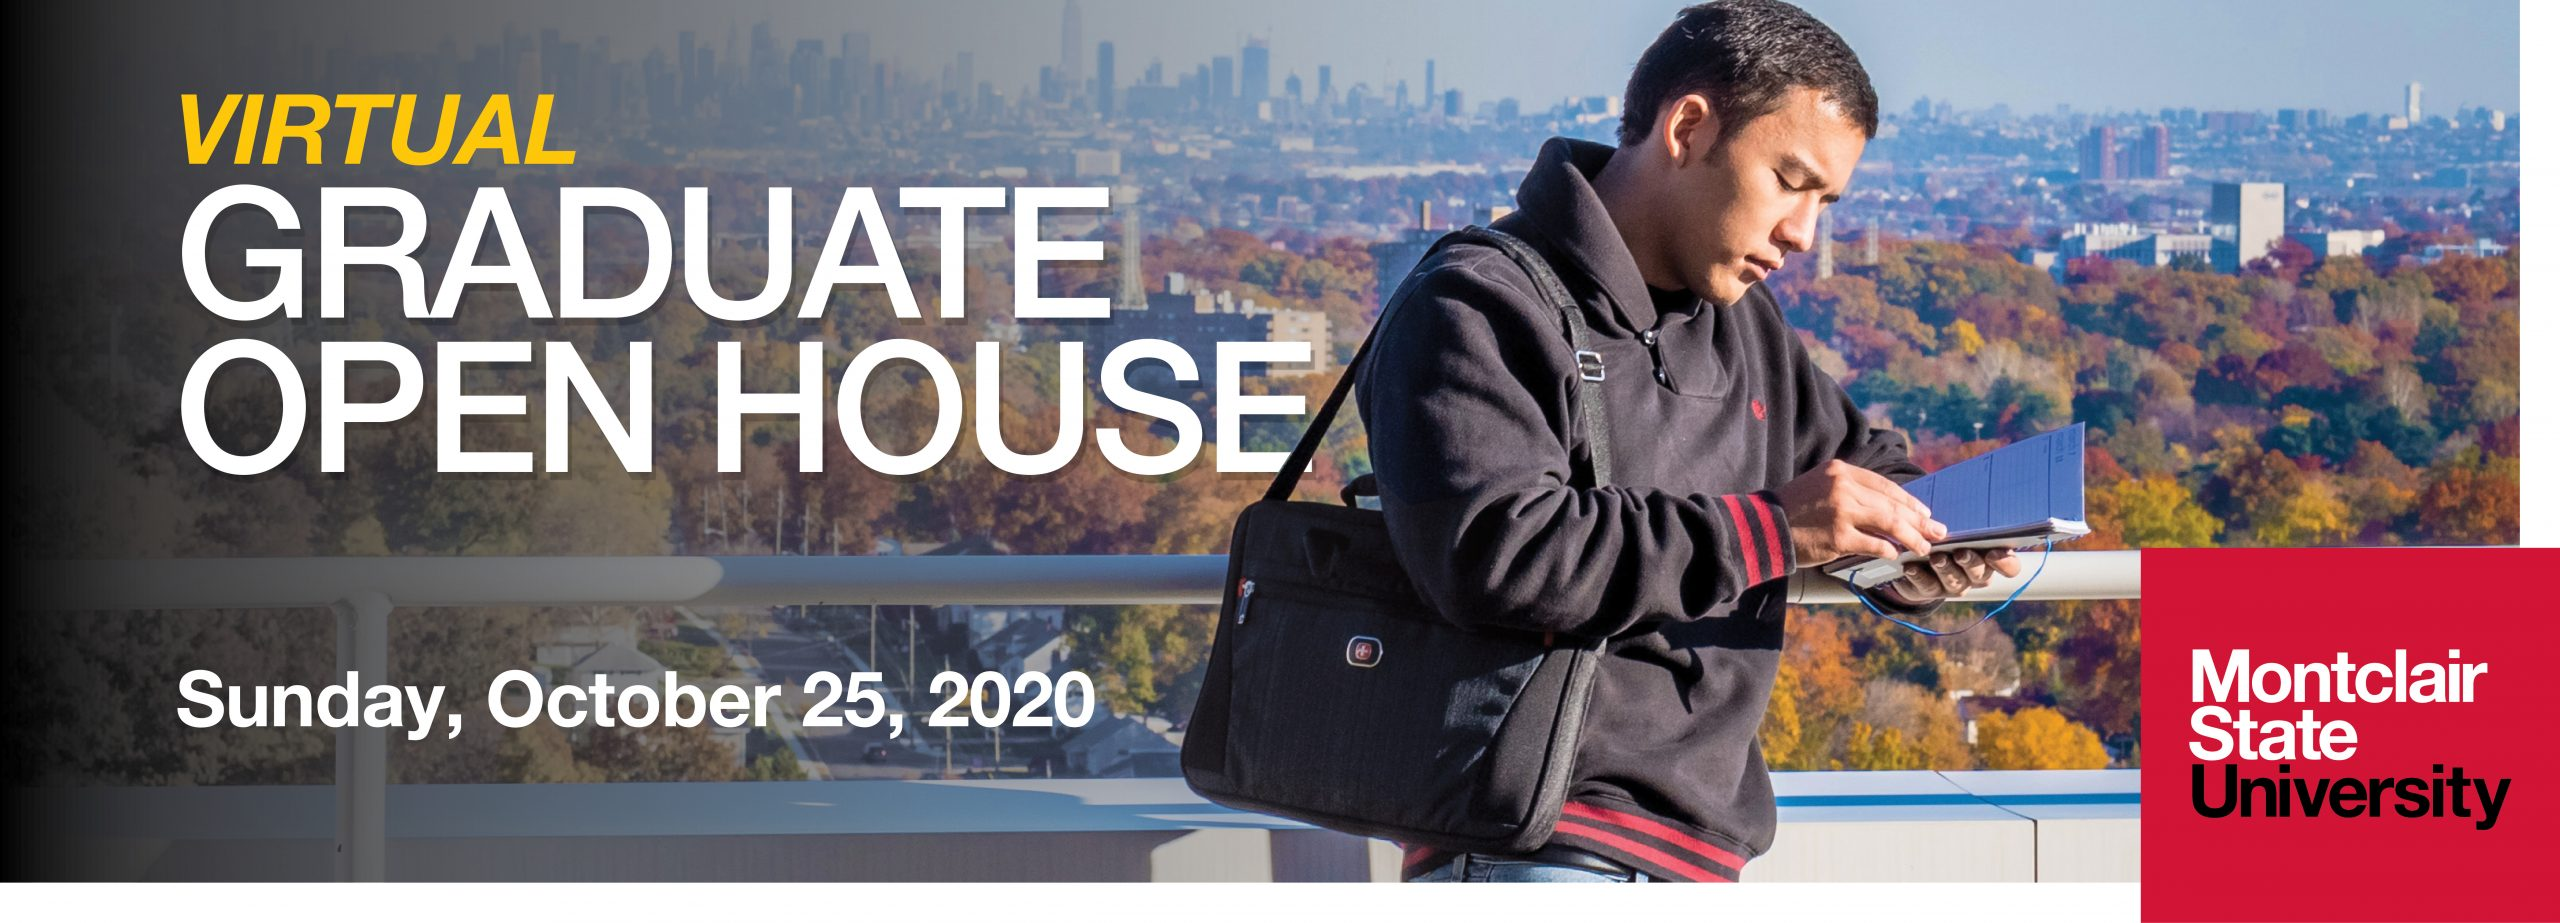 Virtual Graduate Open House Montclair State Fall 2020